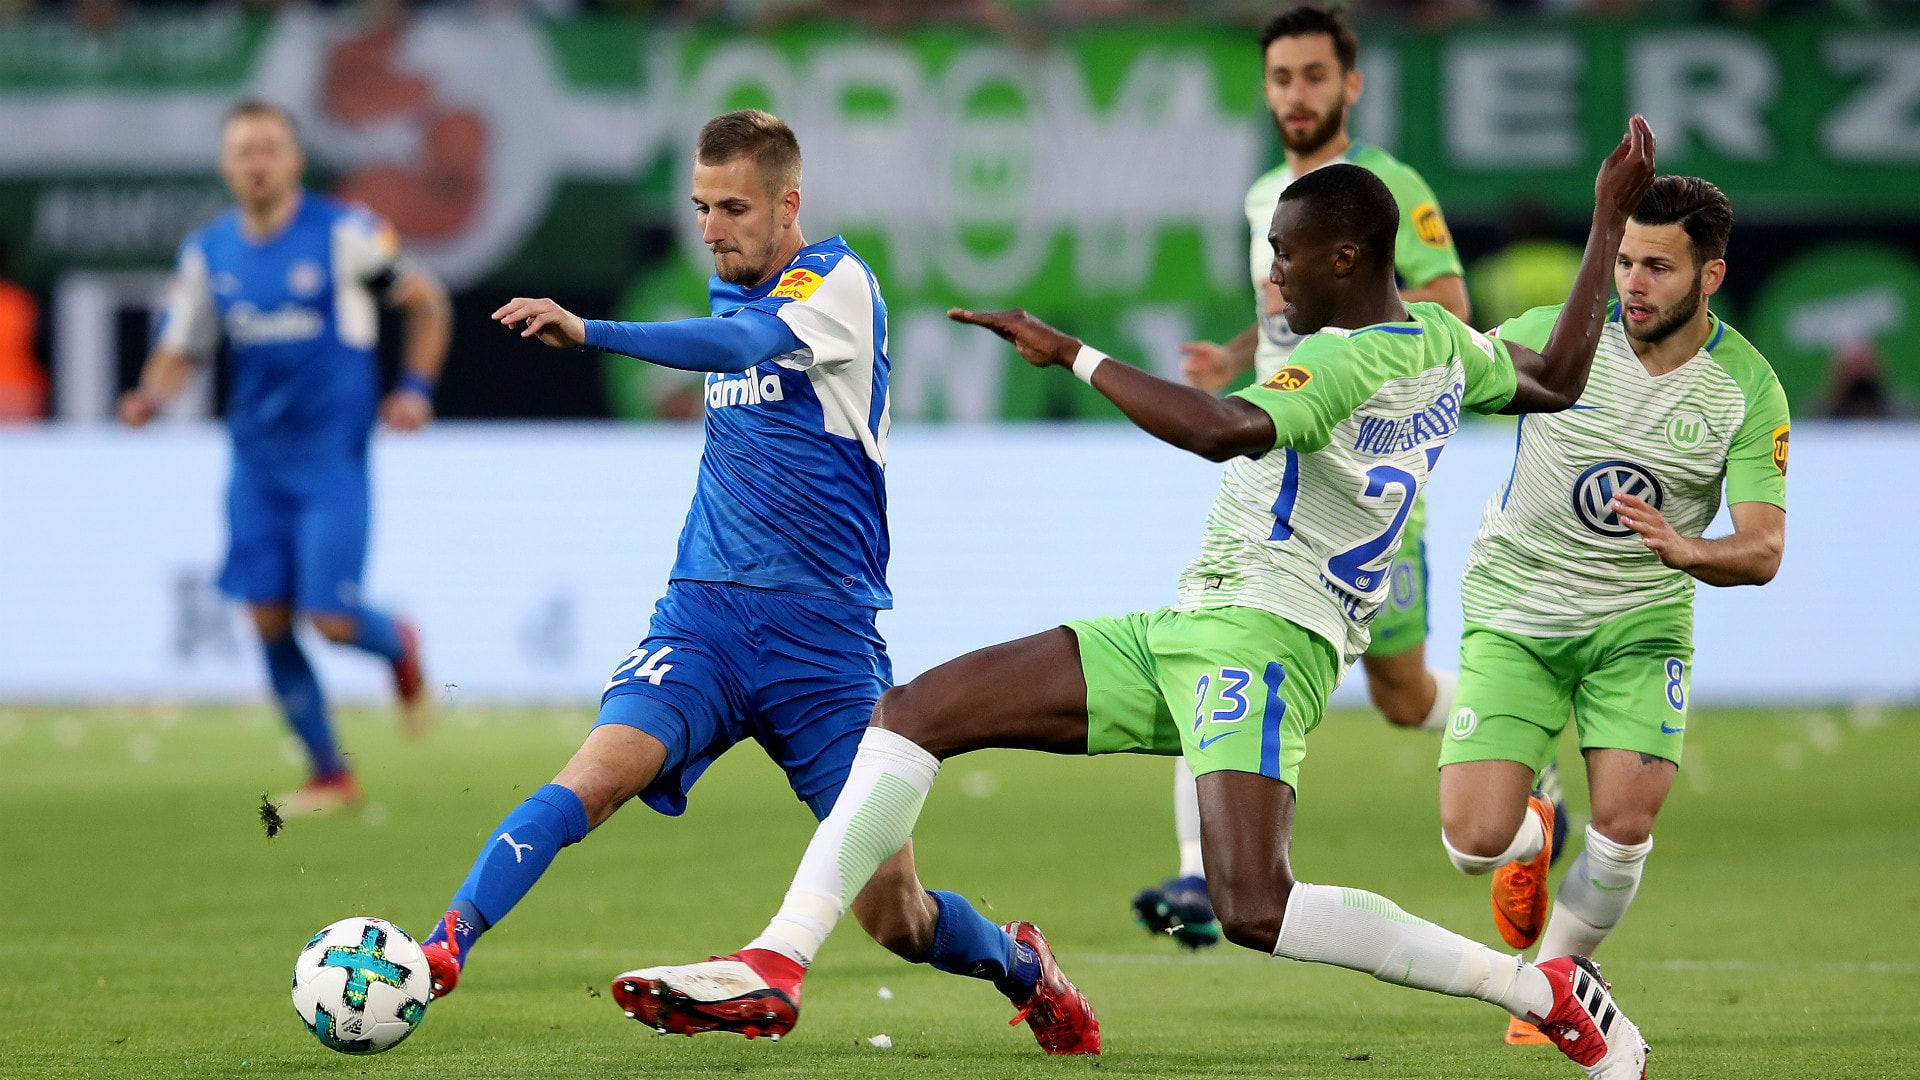 Kiel vs Wolfsburg Soccer Prediction